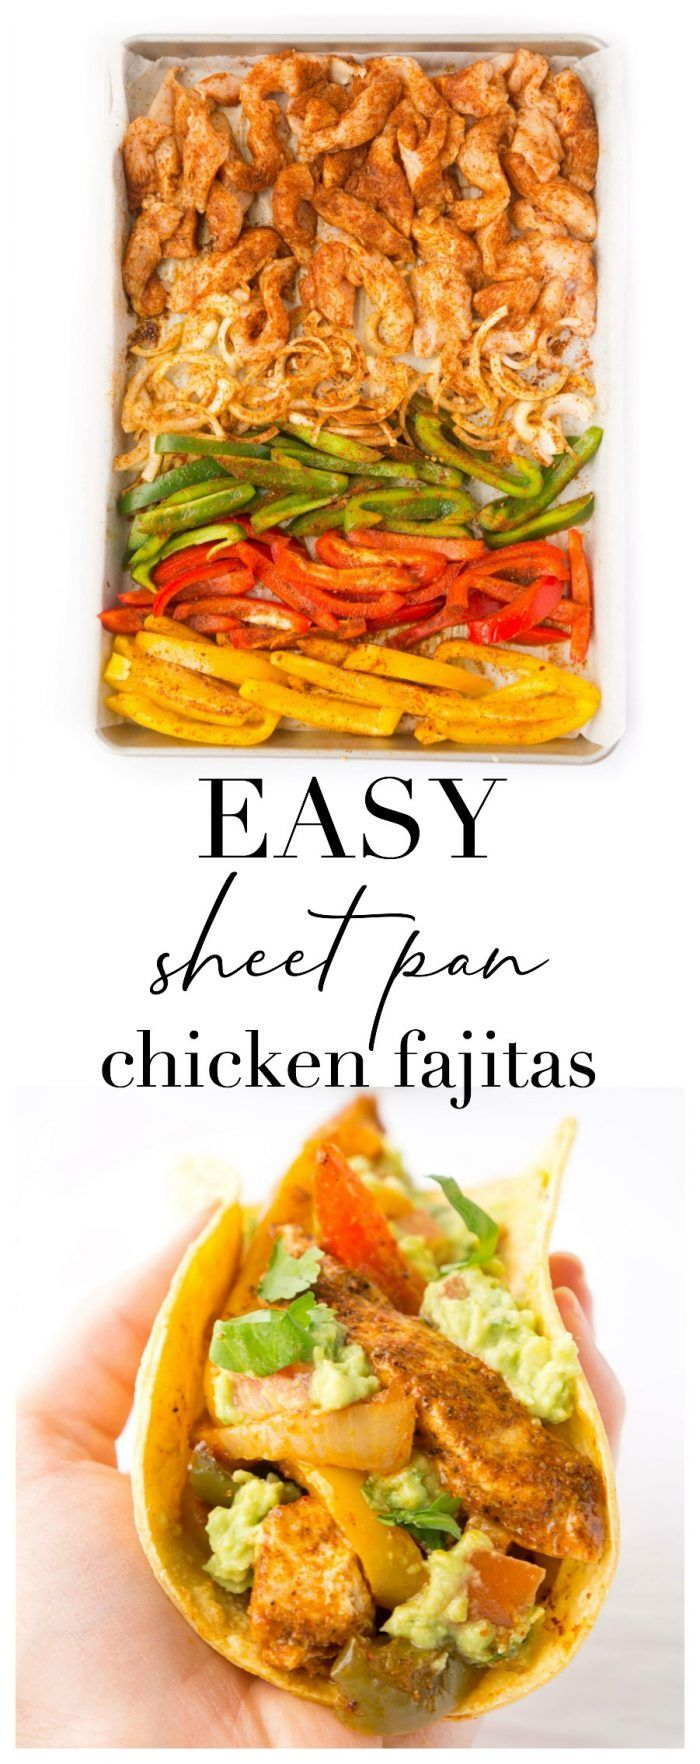 Photo of Healthy Sheet Pan Chicken Fajitas | Haute & Healthy Living